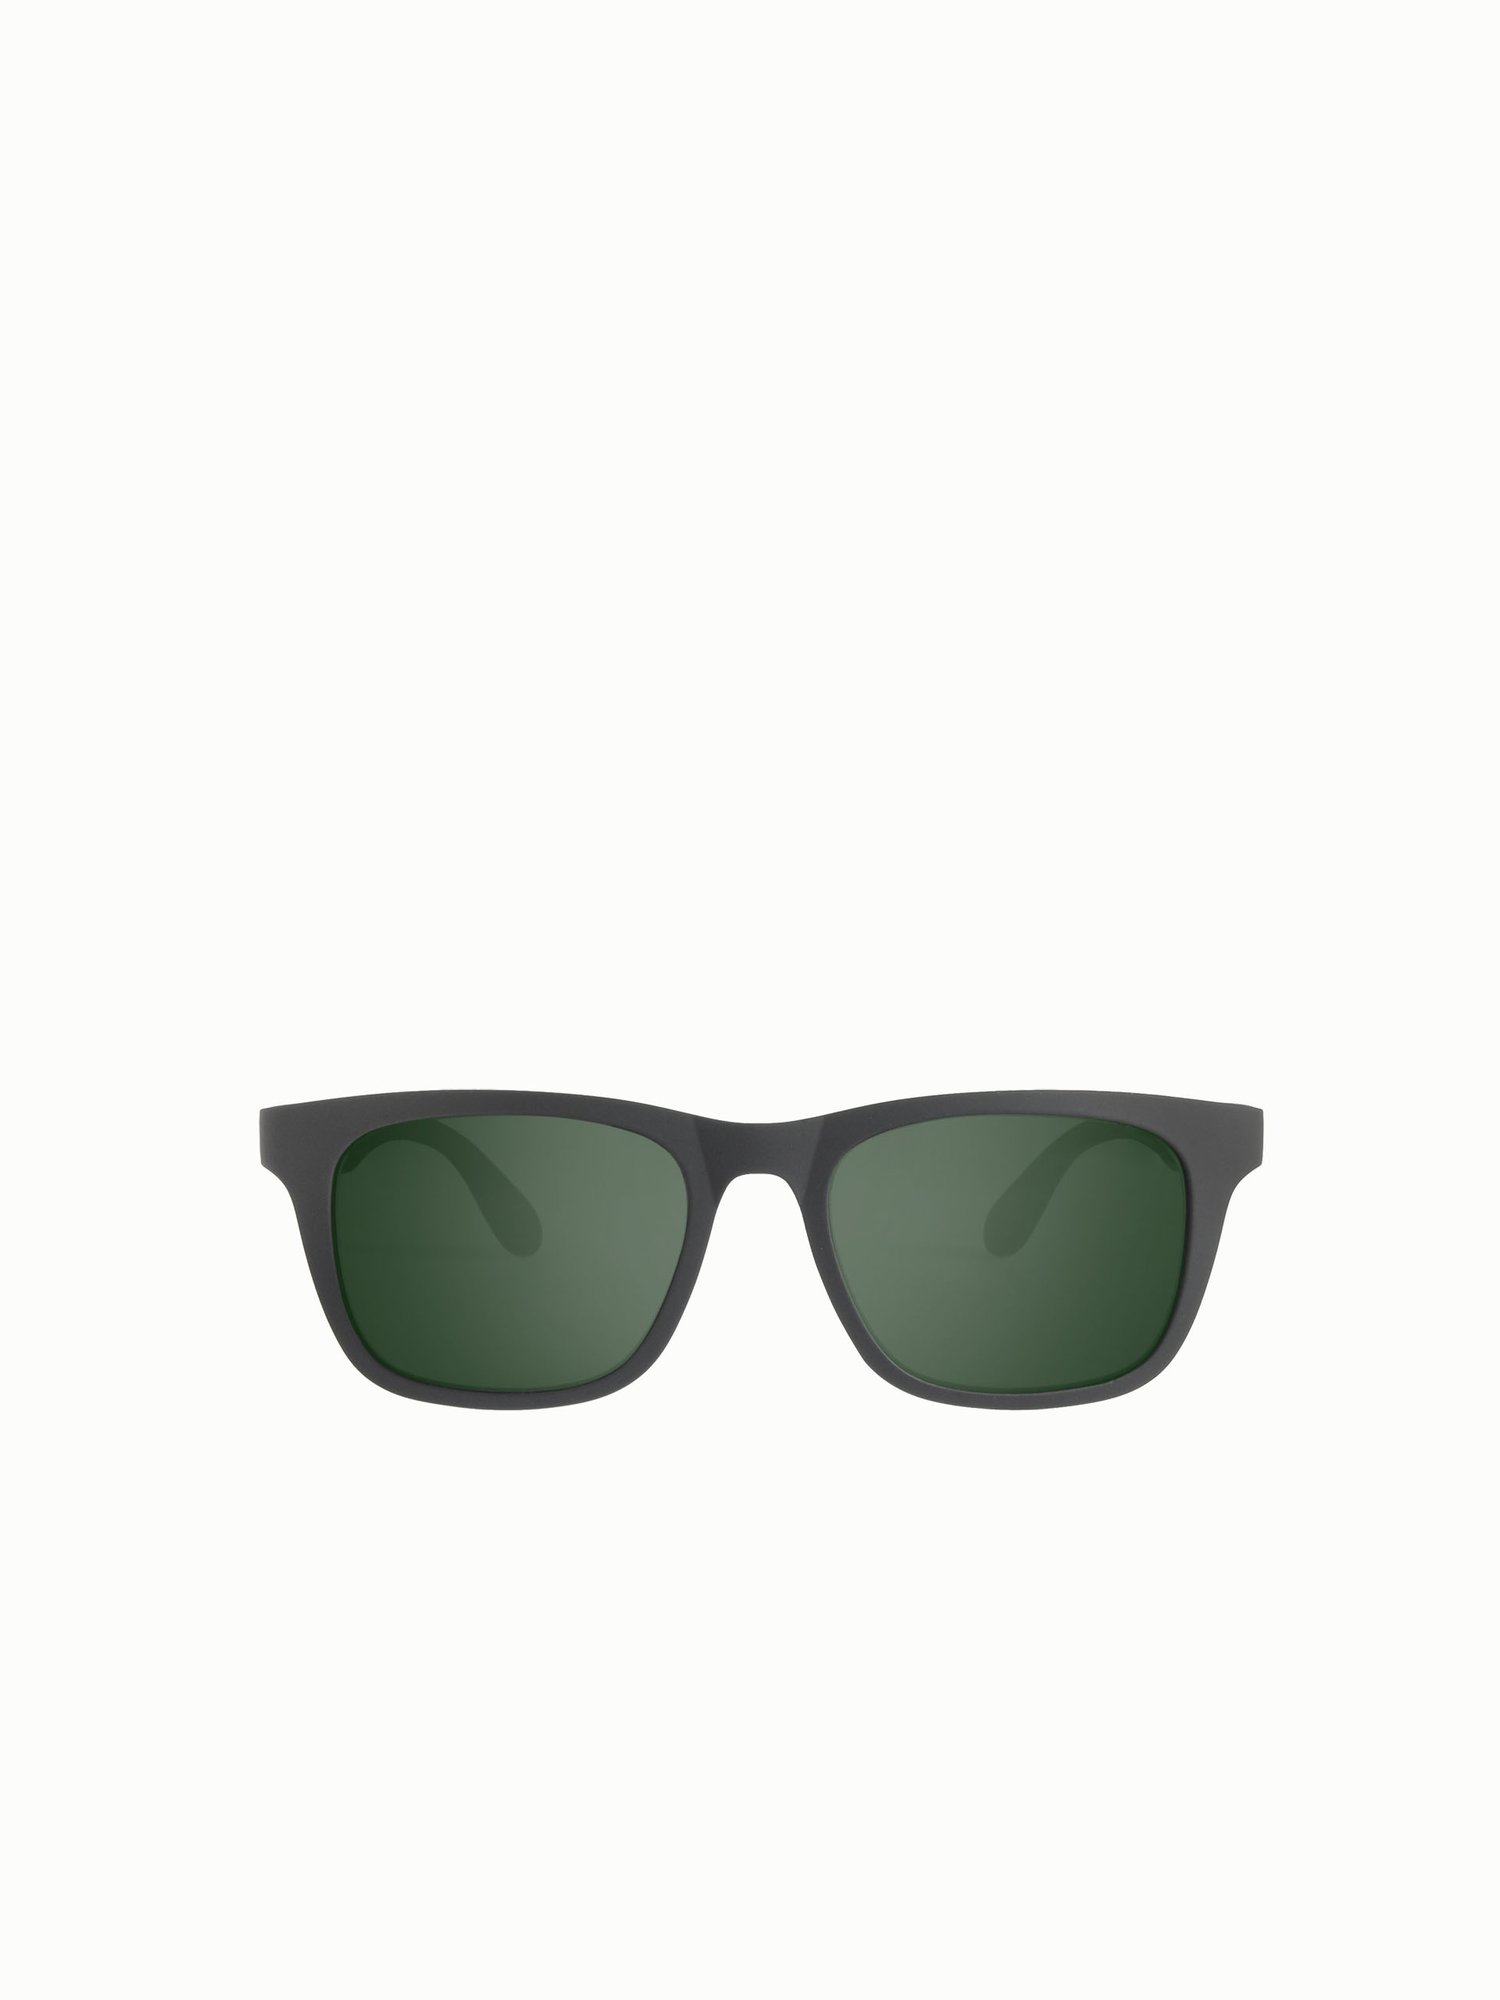 Yachting Sunglasses Man - Dark Grey / Navy / Green /